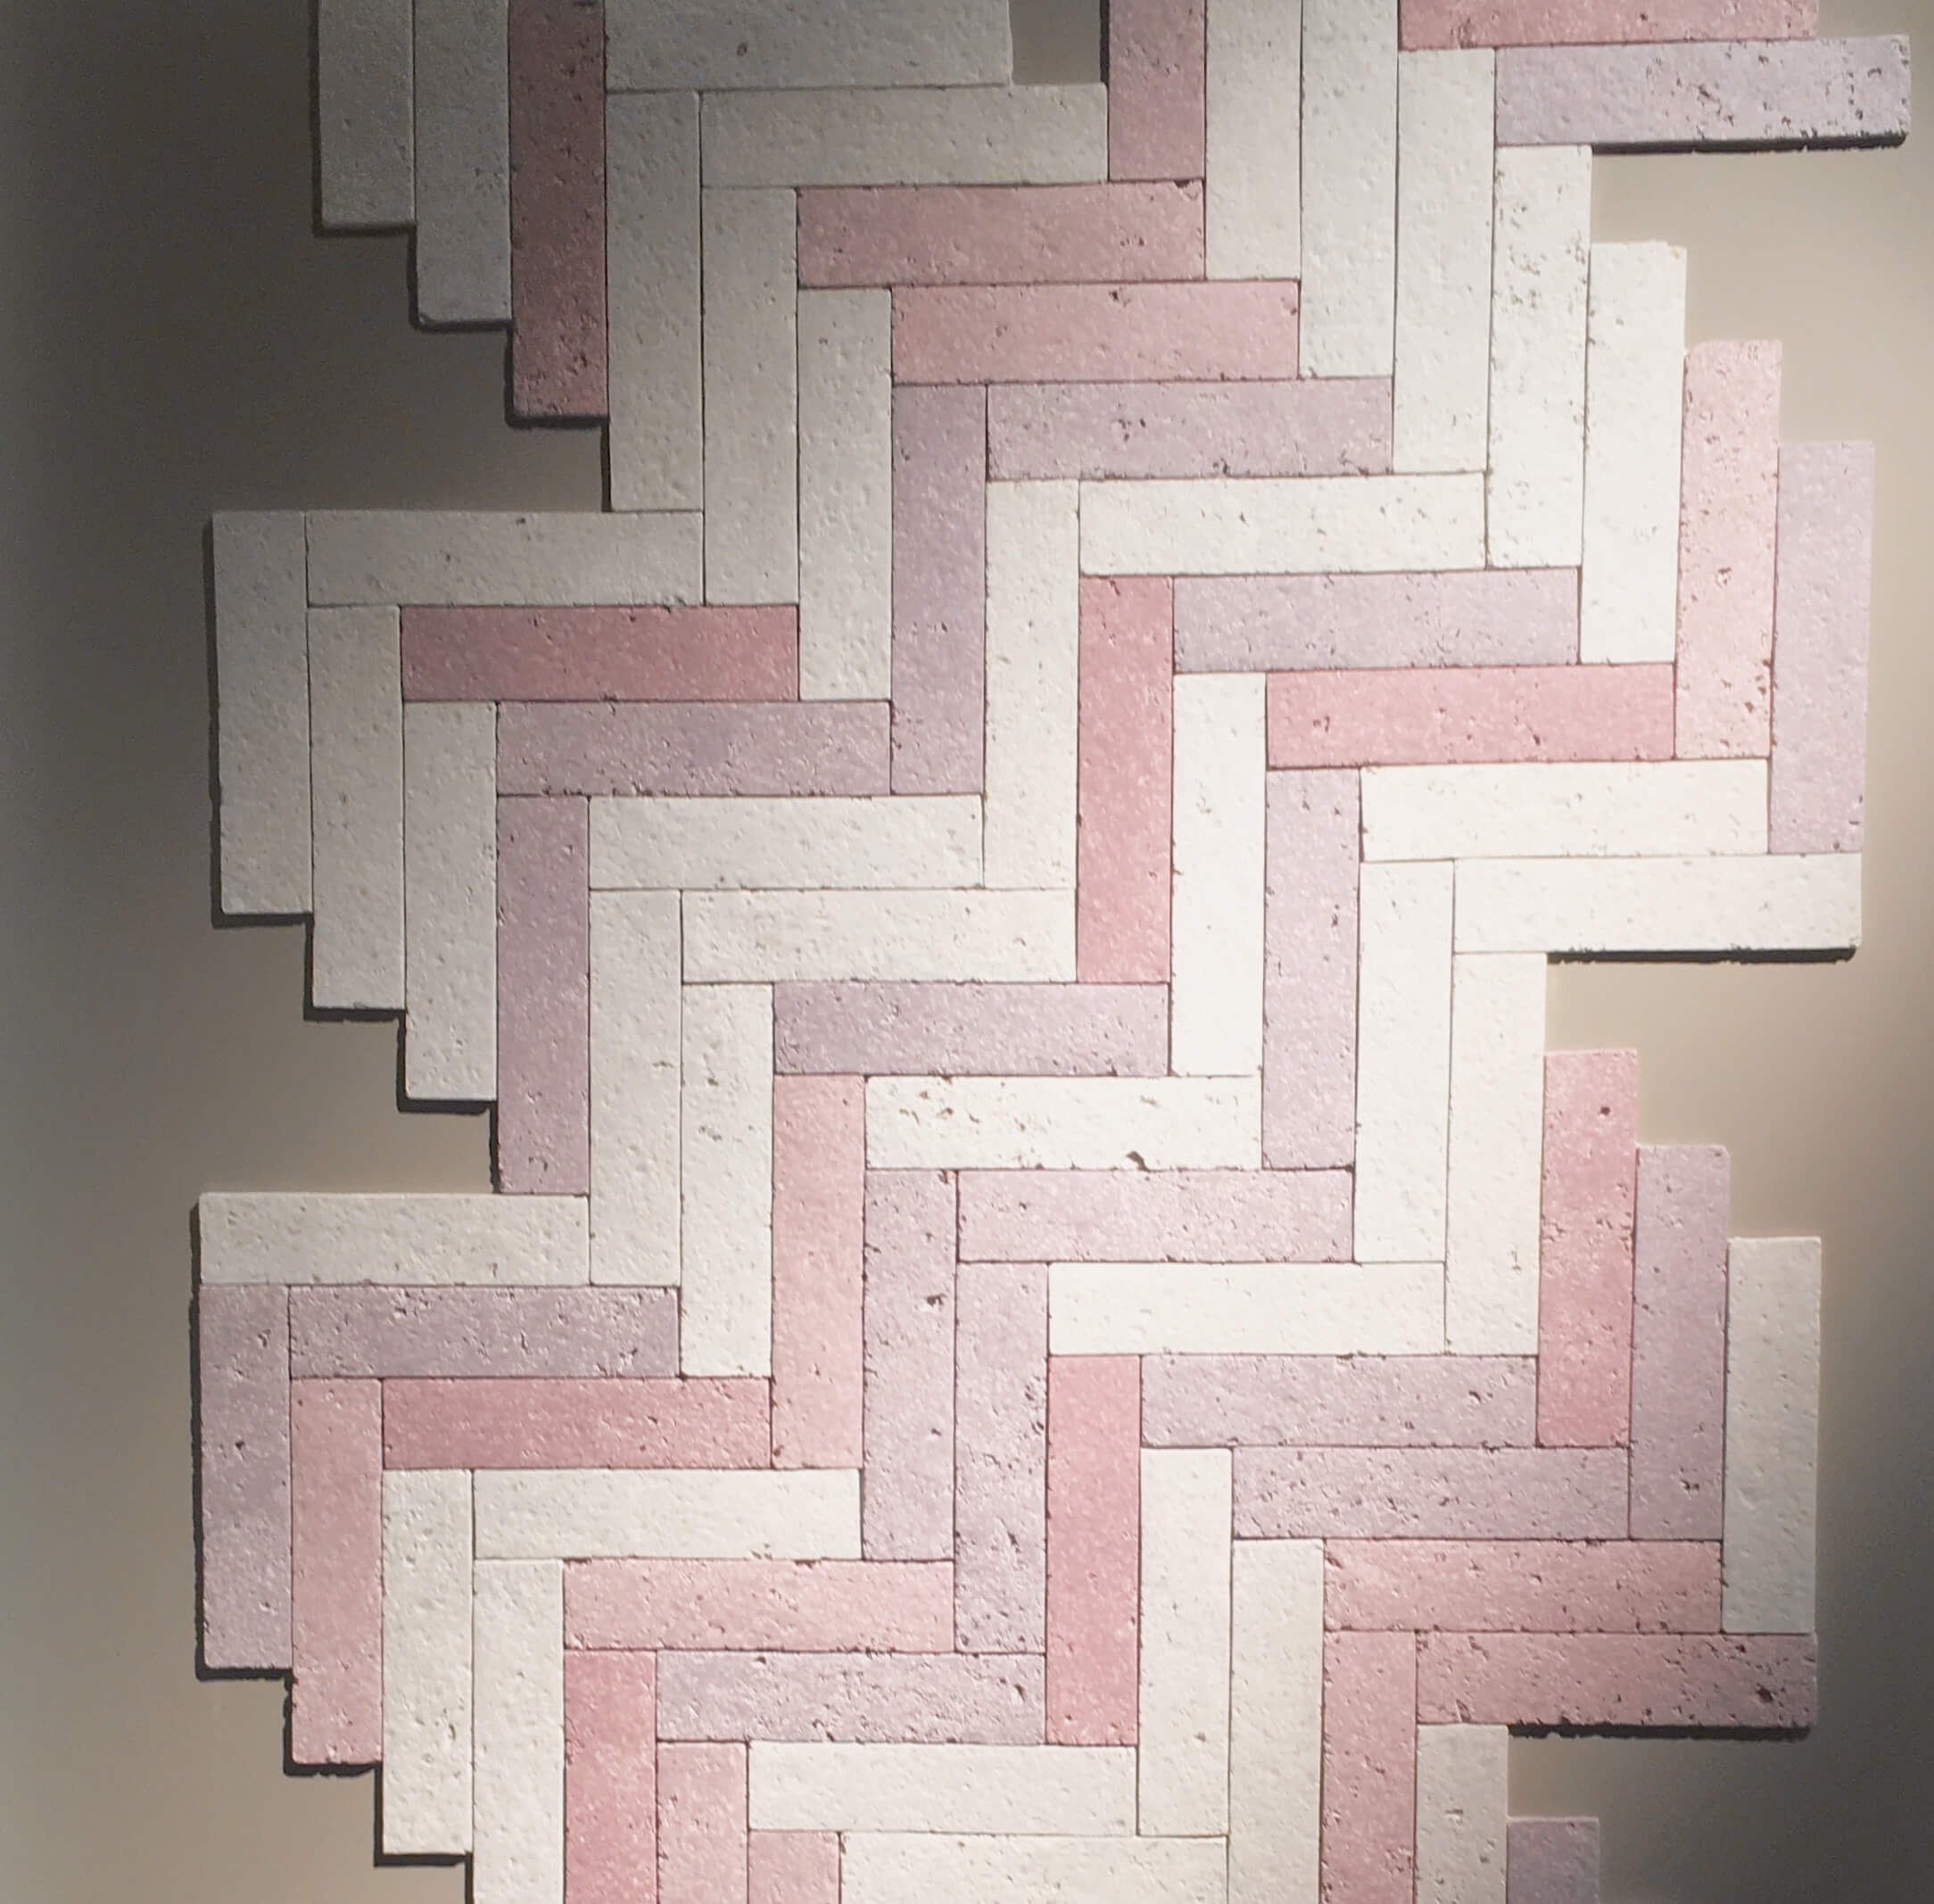 Paper Tiles, Papierrecycling in Verbindung mit Porzellan, Pure Talent Alice Guidi